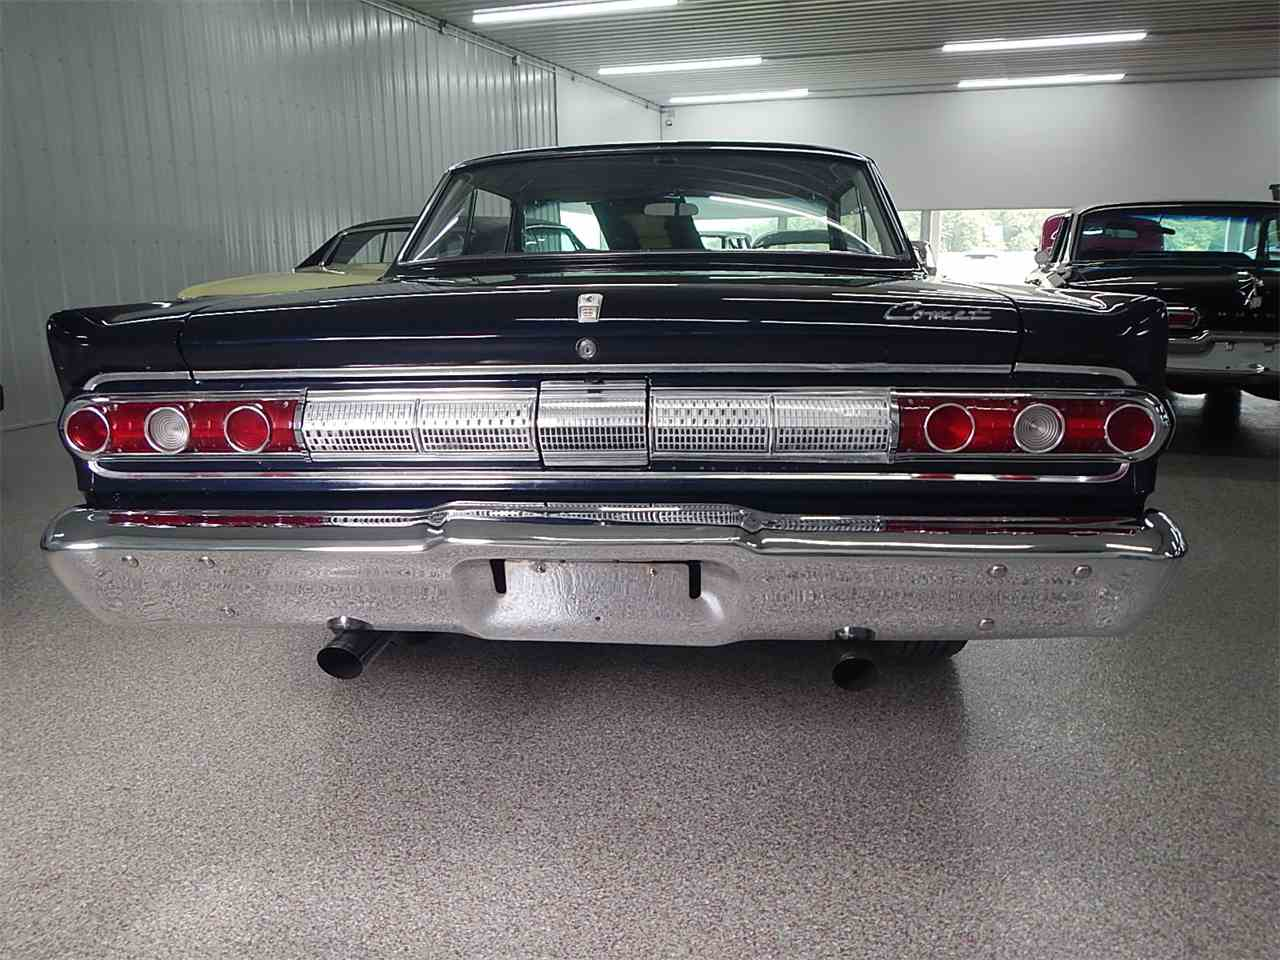 Large Picture of '64 Comet Caliente located in Ohio - $19,500.00 - MDSA